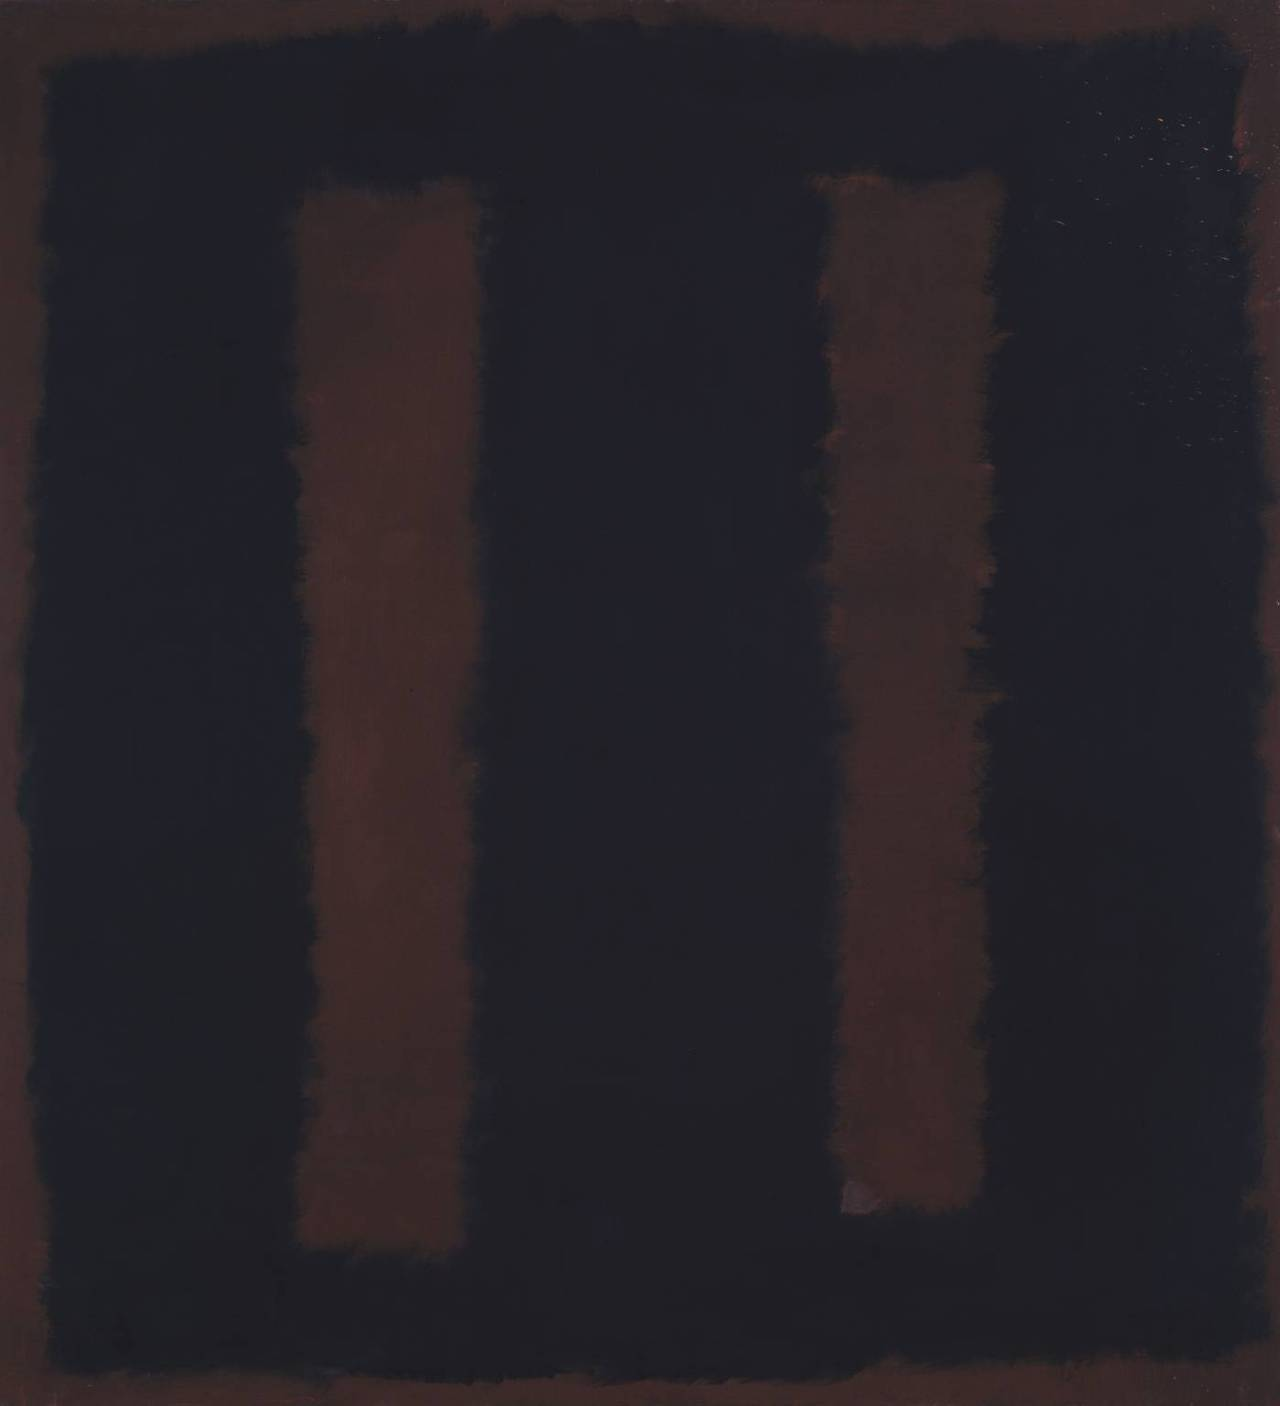 Mark Rothko, Black on Maroon 1958 © Kate Rothko Prizel and Christopher Rothko/DACS 1998